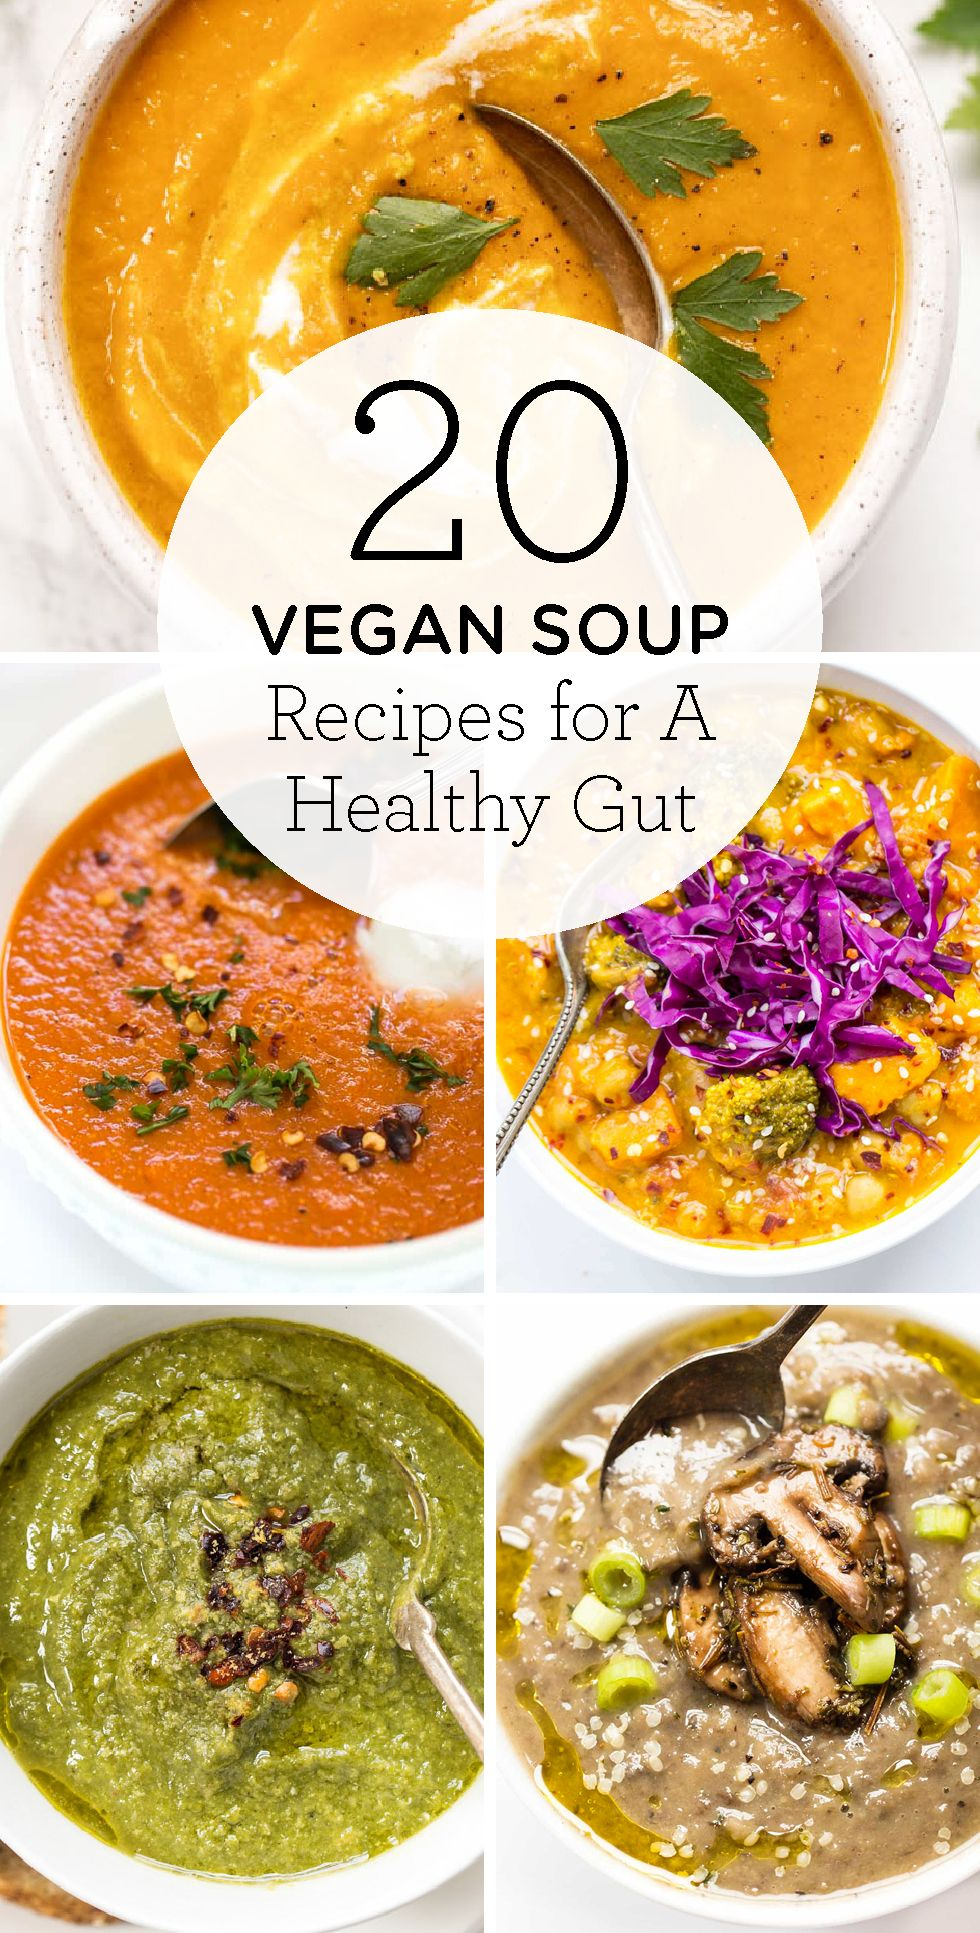 20 Vegan Soup Recipes For A Healthy Gut Simply Quinoa Vegan Soup Recipes Soup Recipes Recipes